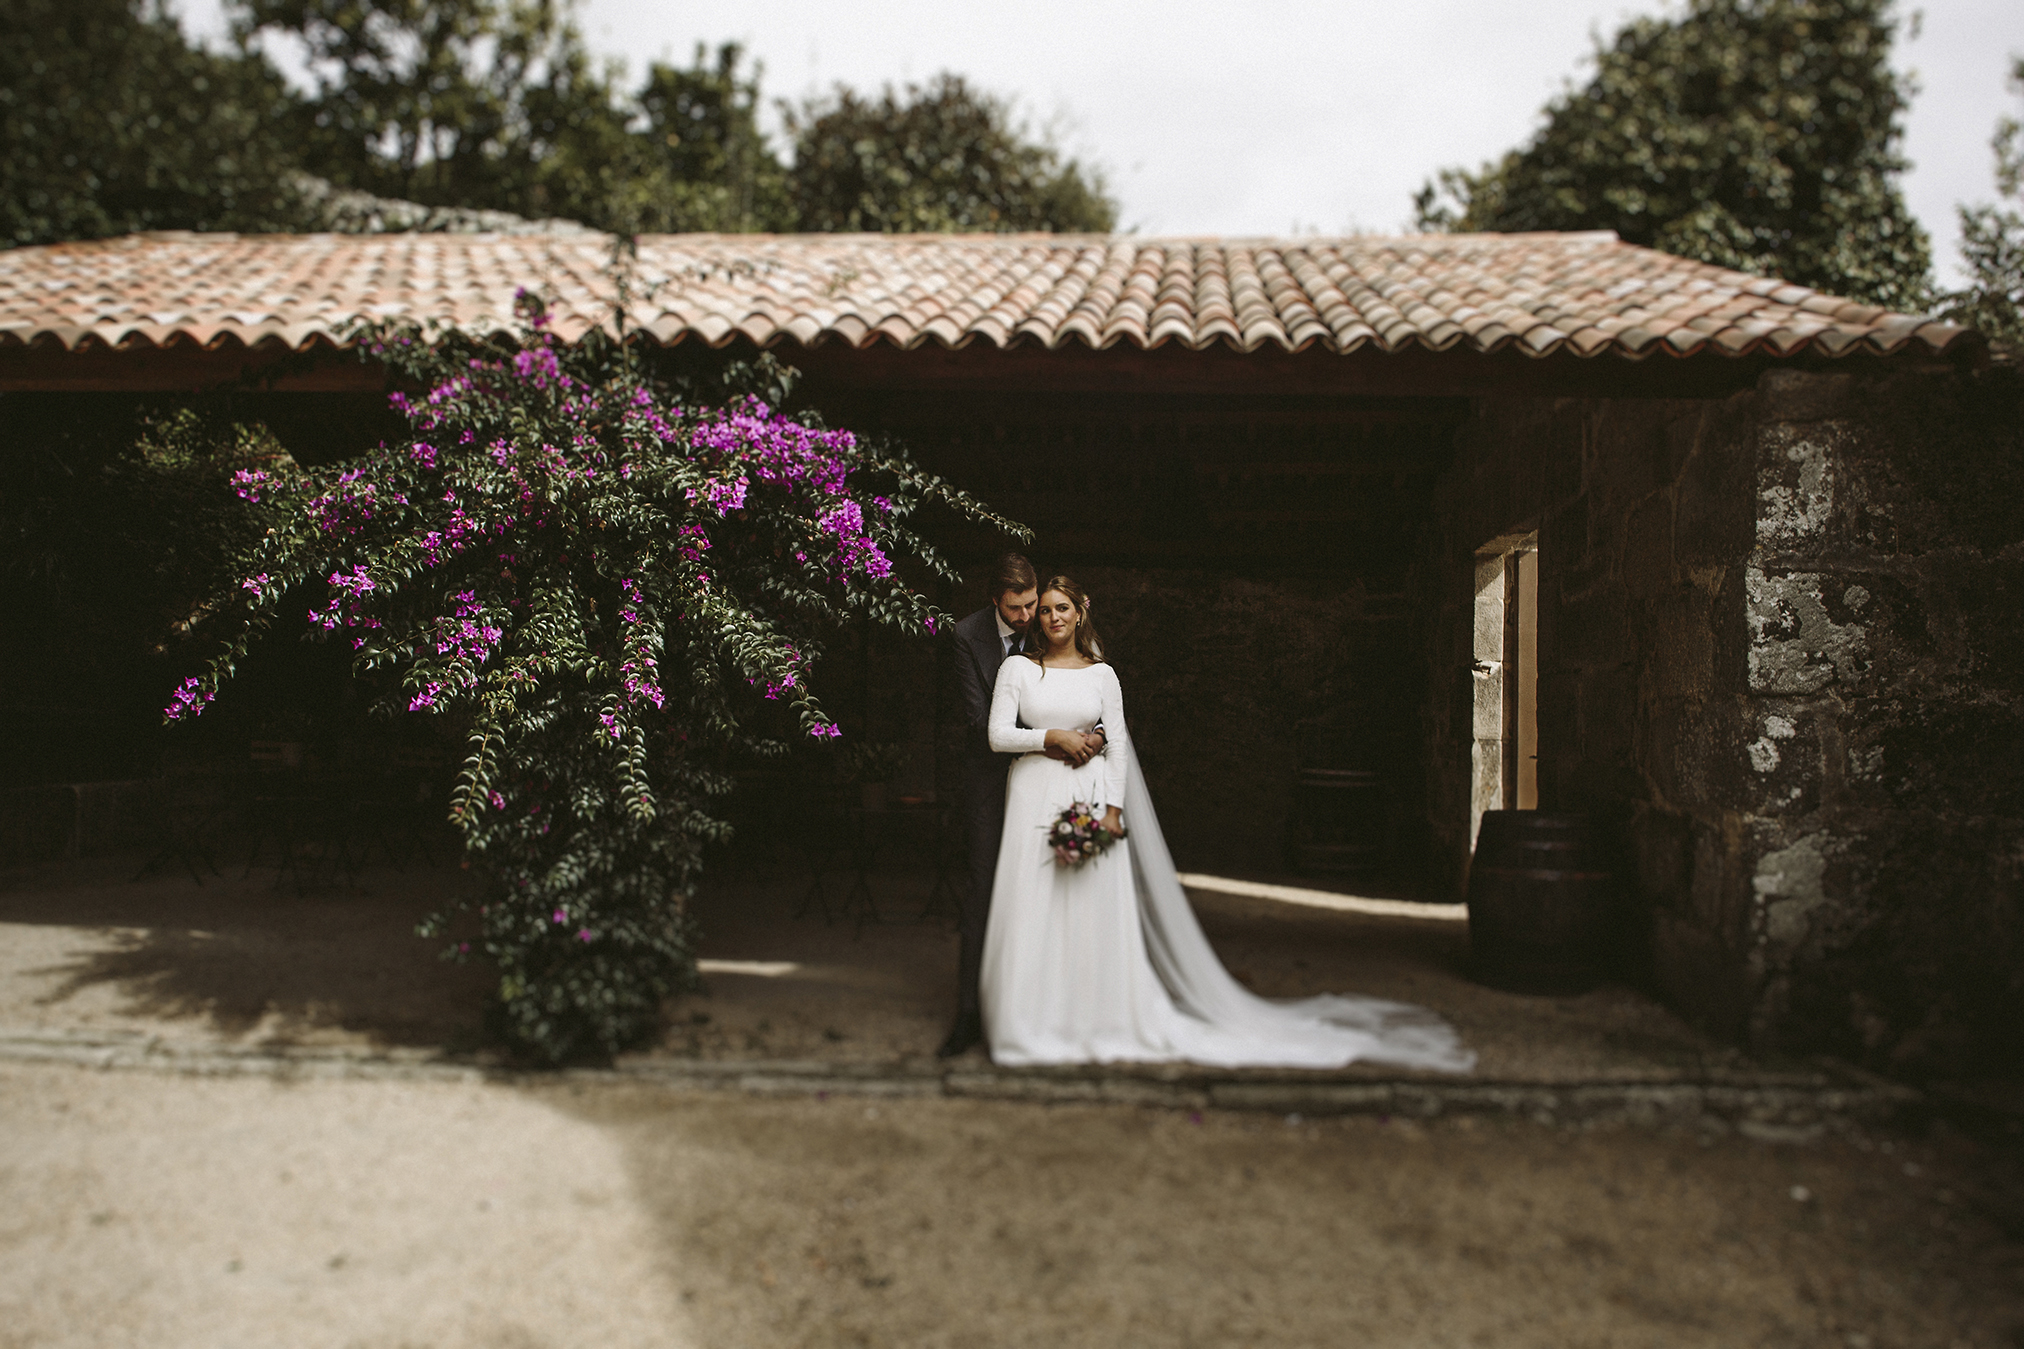 Aida & Luis_Wedding_by Graciela Vilagudin 370.jpg